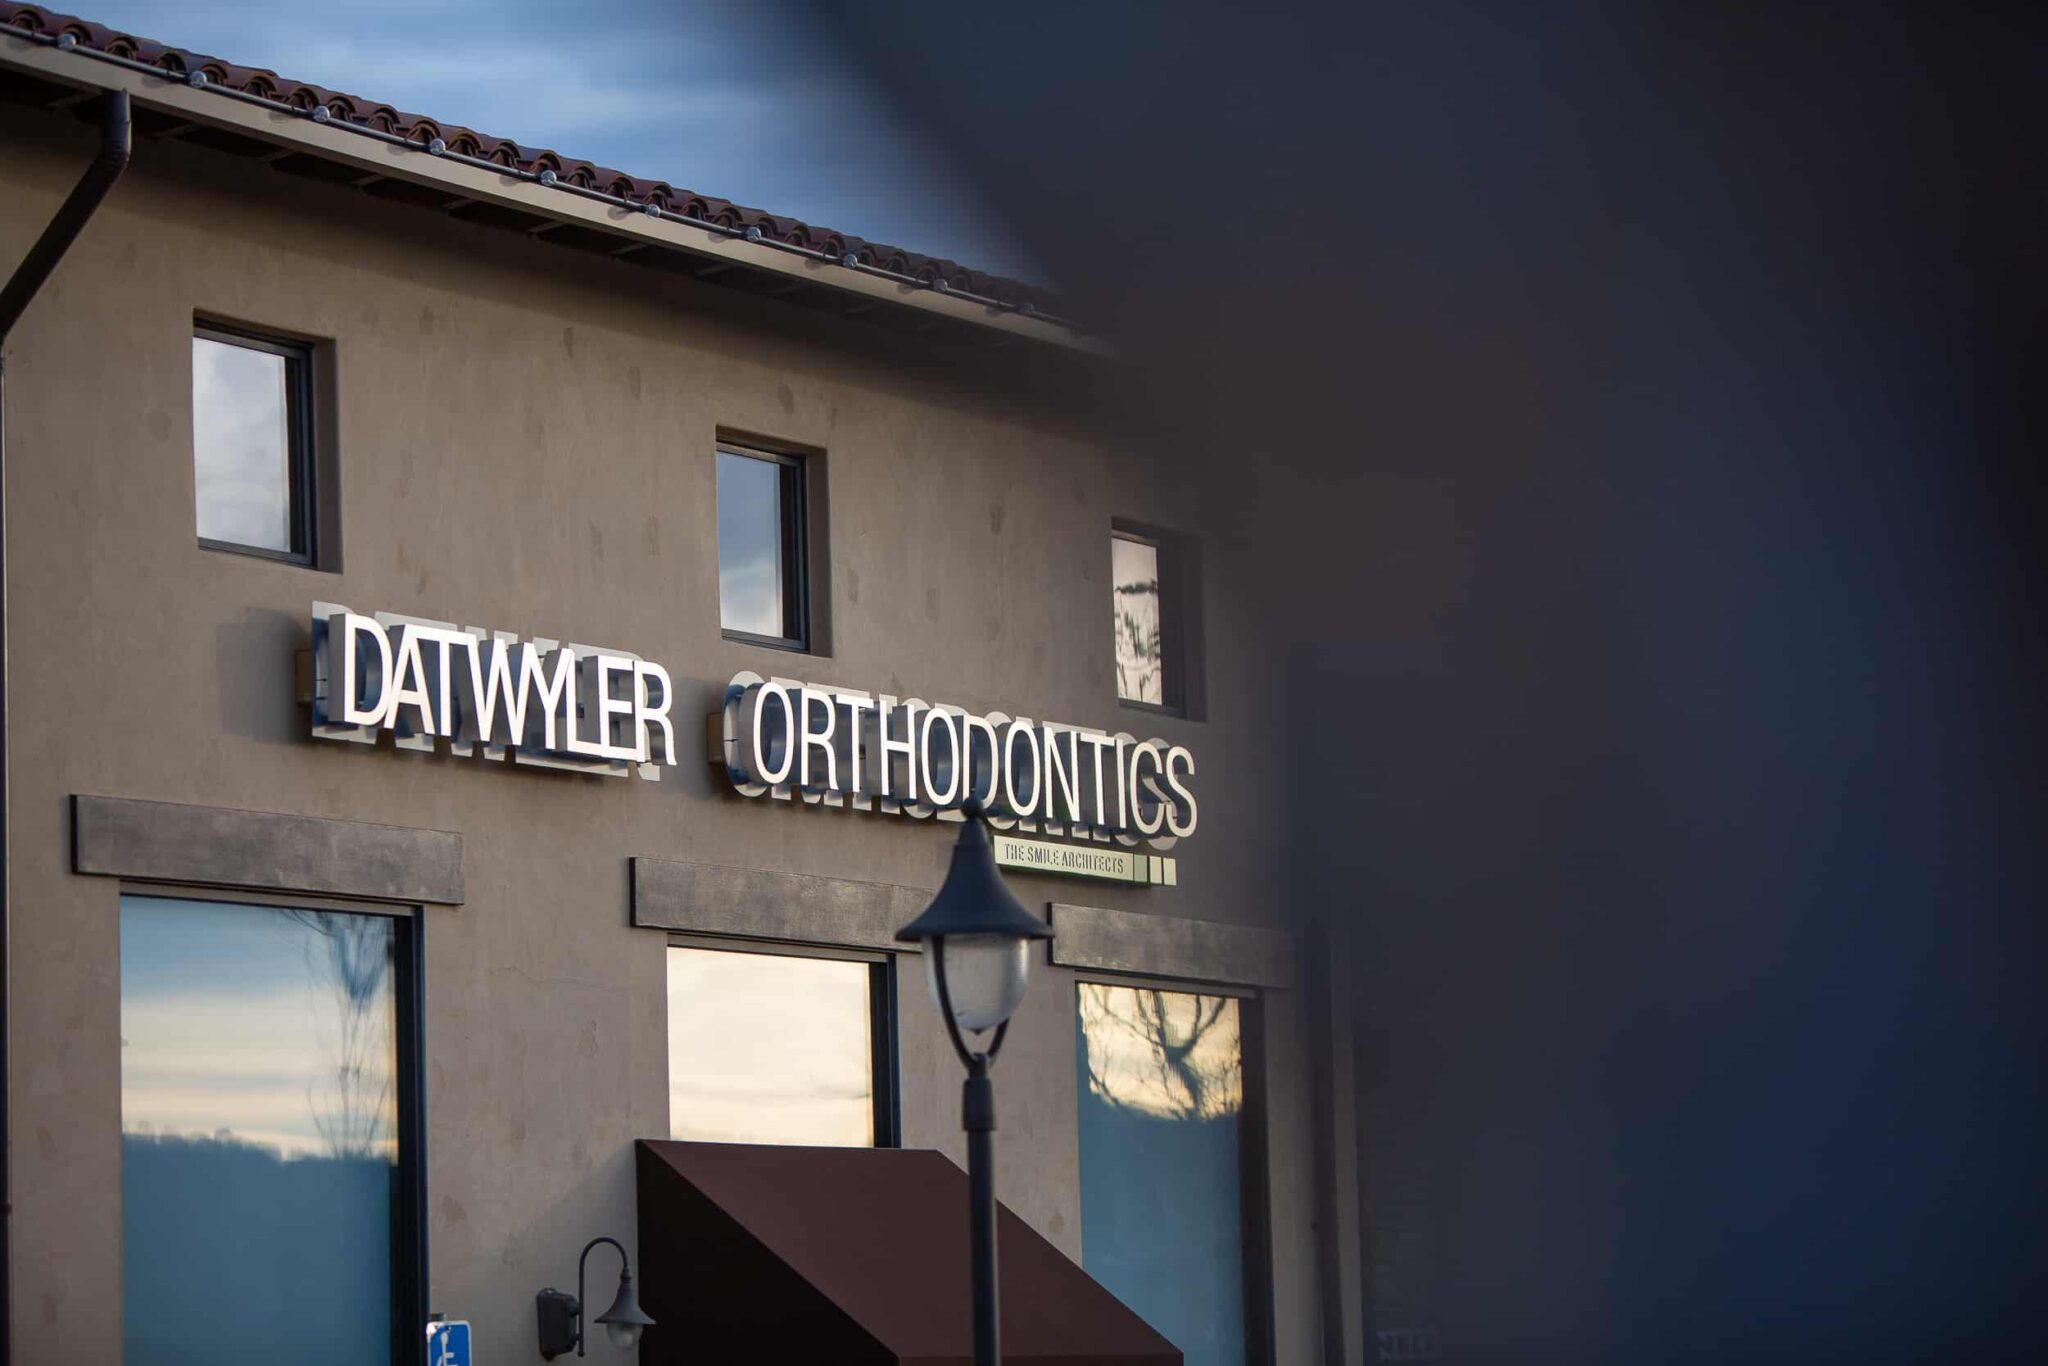 Office Datwyler Orthodontics 2019 El Dorado Hills California Orthodontist 76 - FAQ - Invisalign & Braces